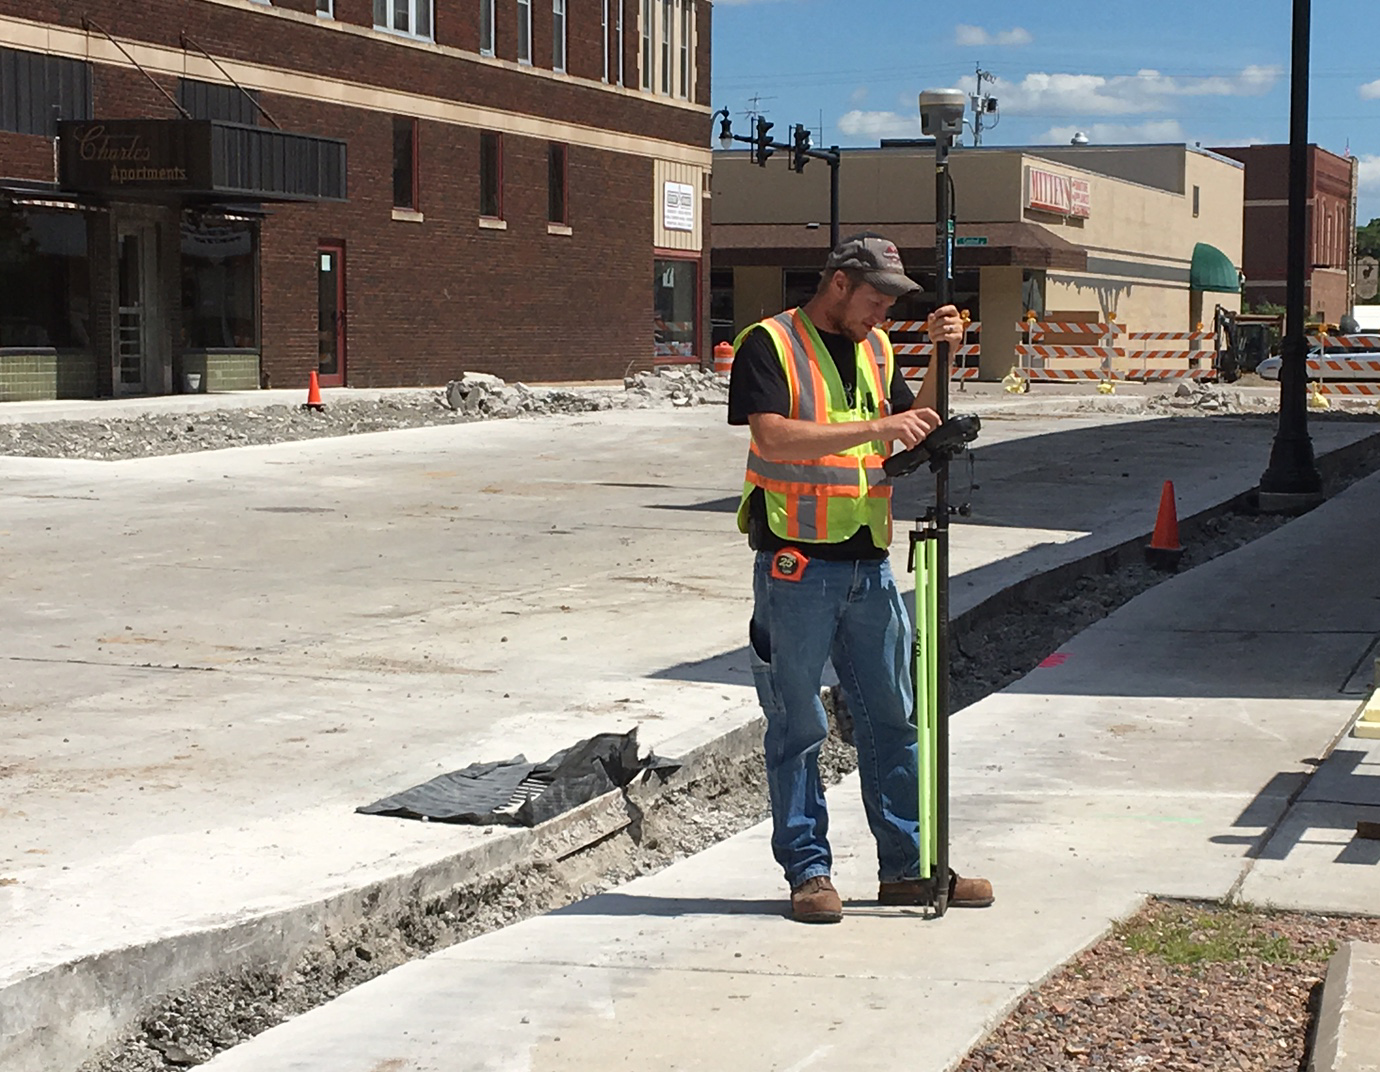 City of Marshfield employee Shawn Miller works on the conversion of Second Street between Central and Chestnut Avenues into a one-lane avenue.